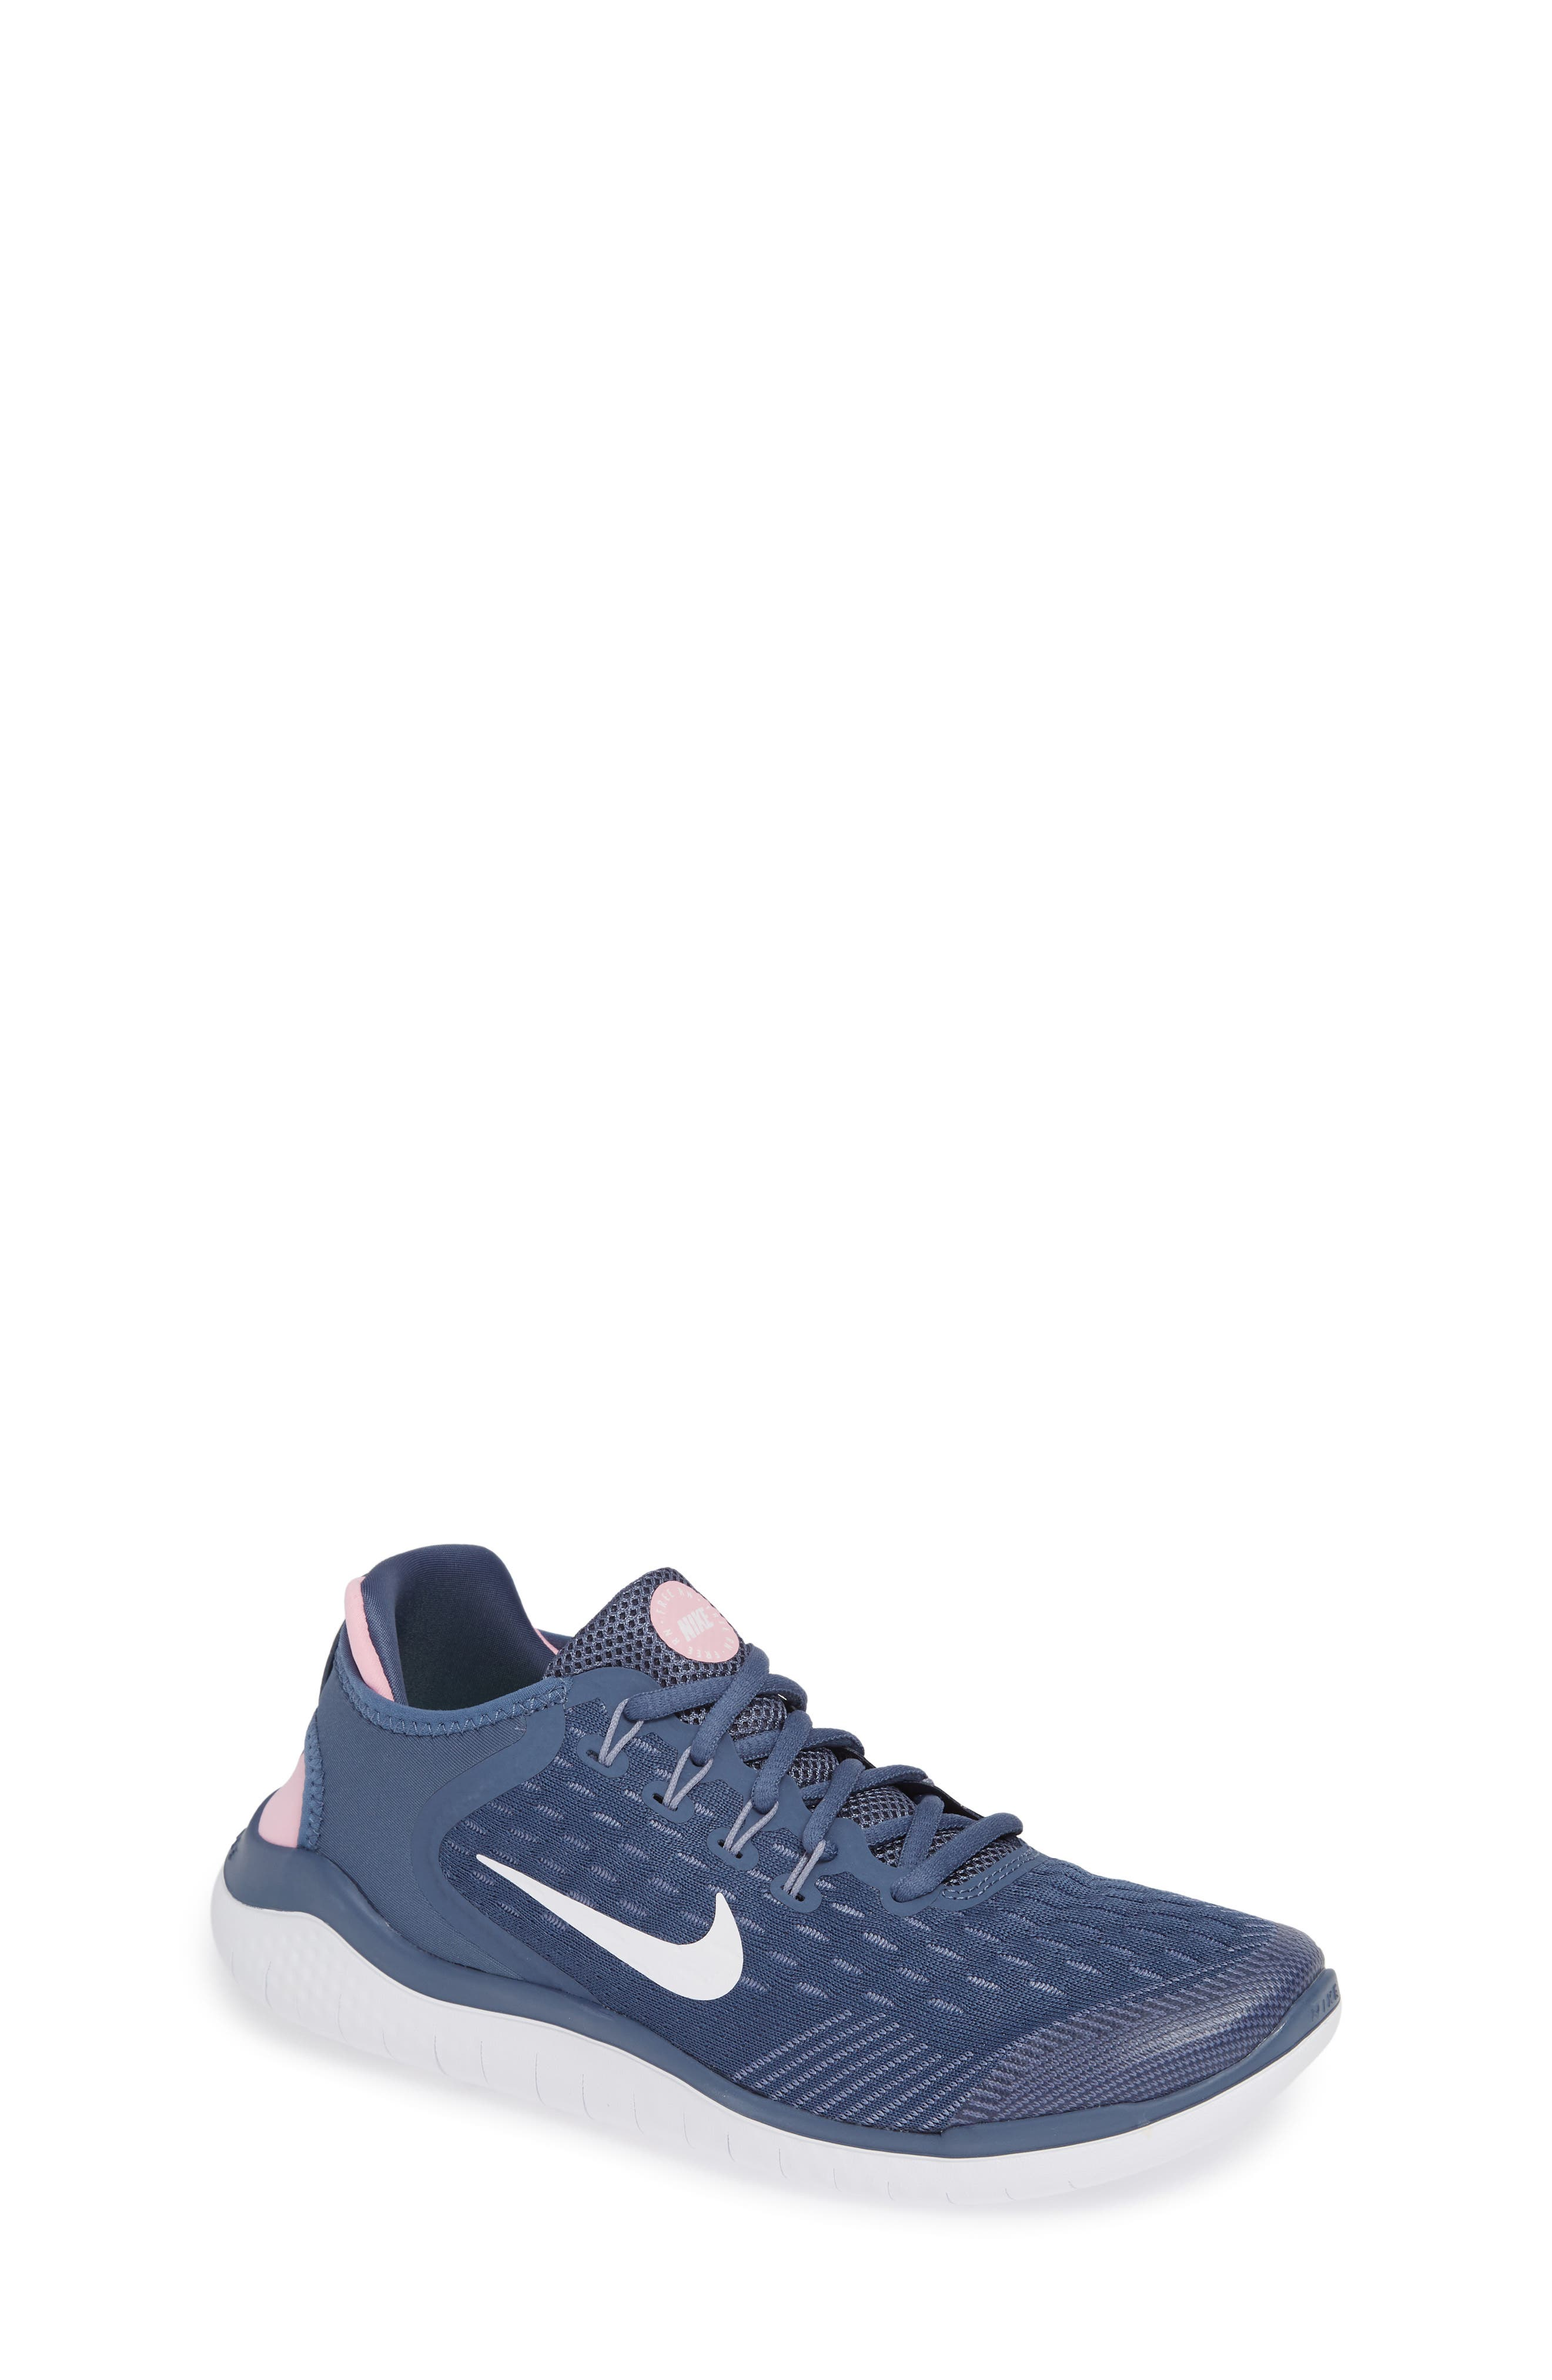 Free RN 2018 Running Shoe,                             Main thumbnail 1, color,                             BLUE/ WHITE/ SLATE/ PINK